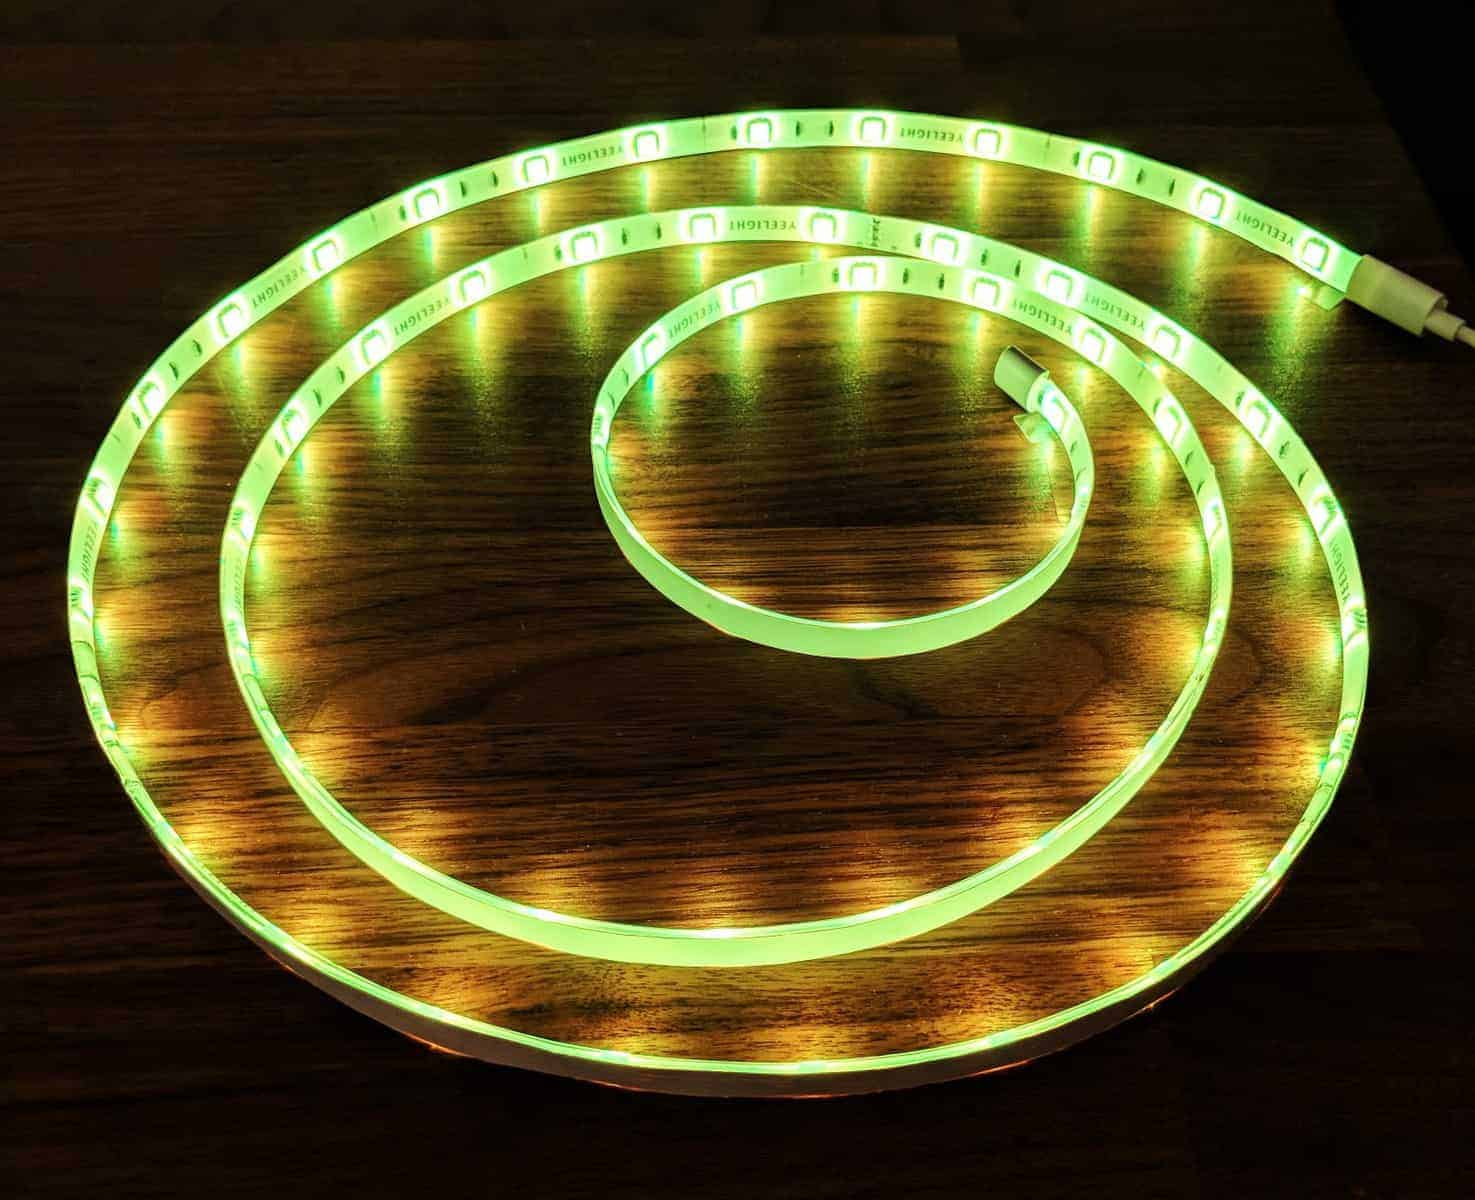 Yeelight-Strip-Photos10 Xiaomi Yeelight Smart Wi-Fi Light Strip Review